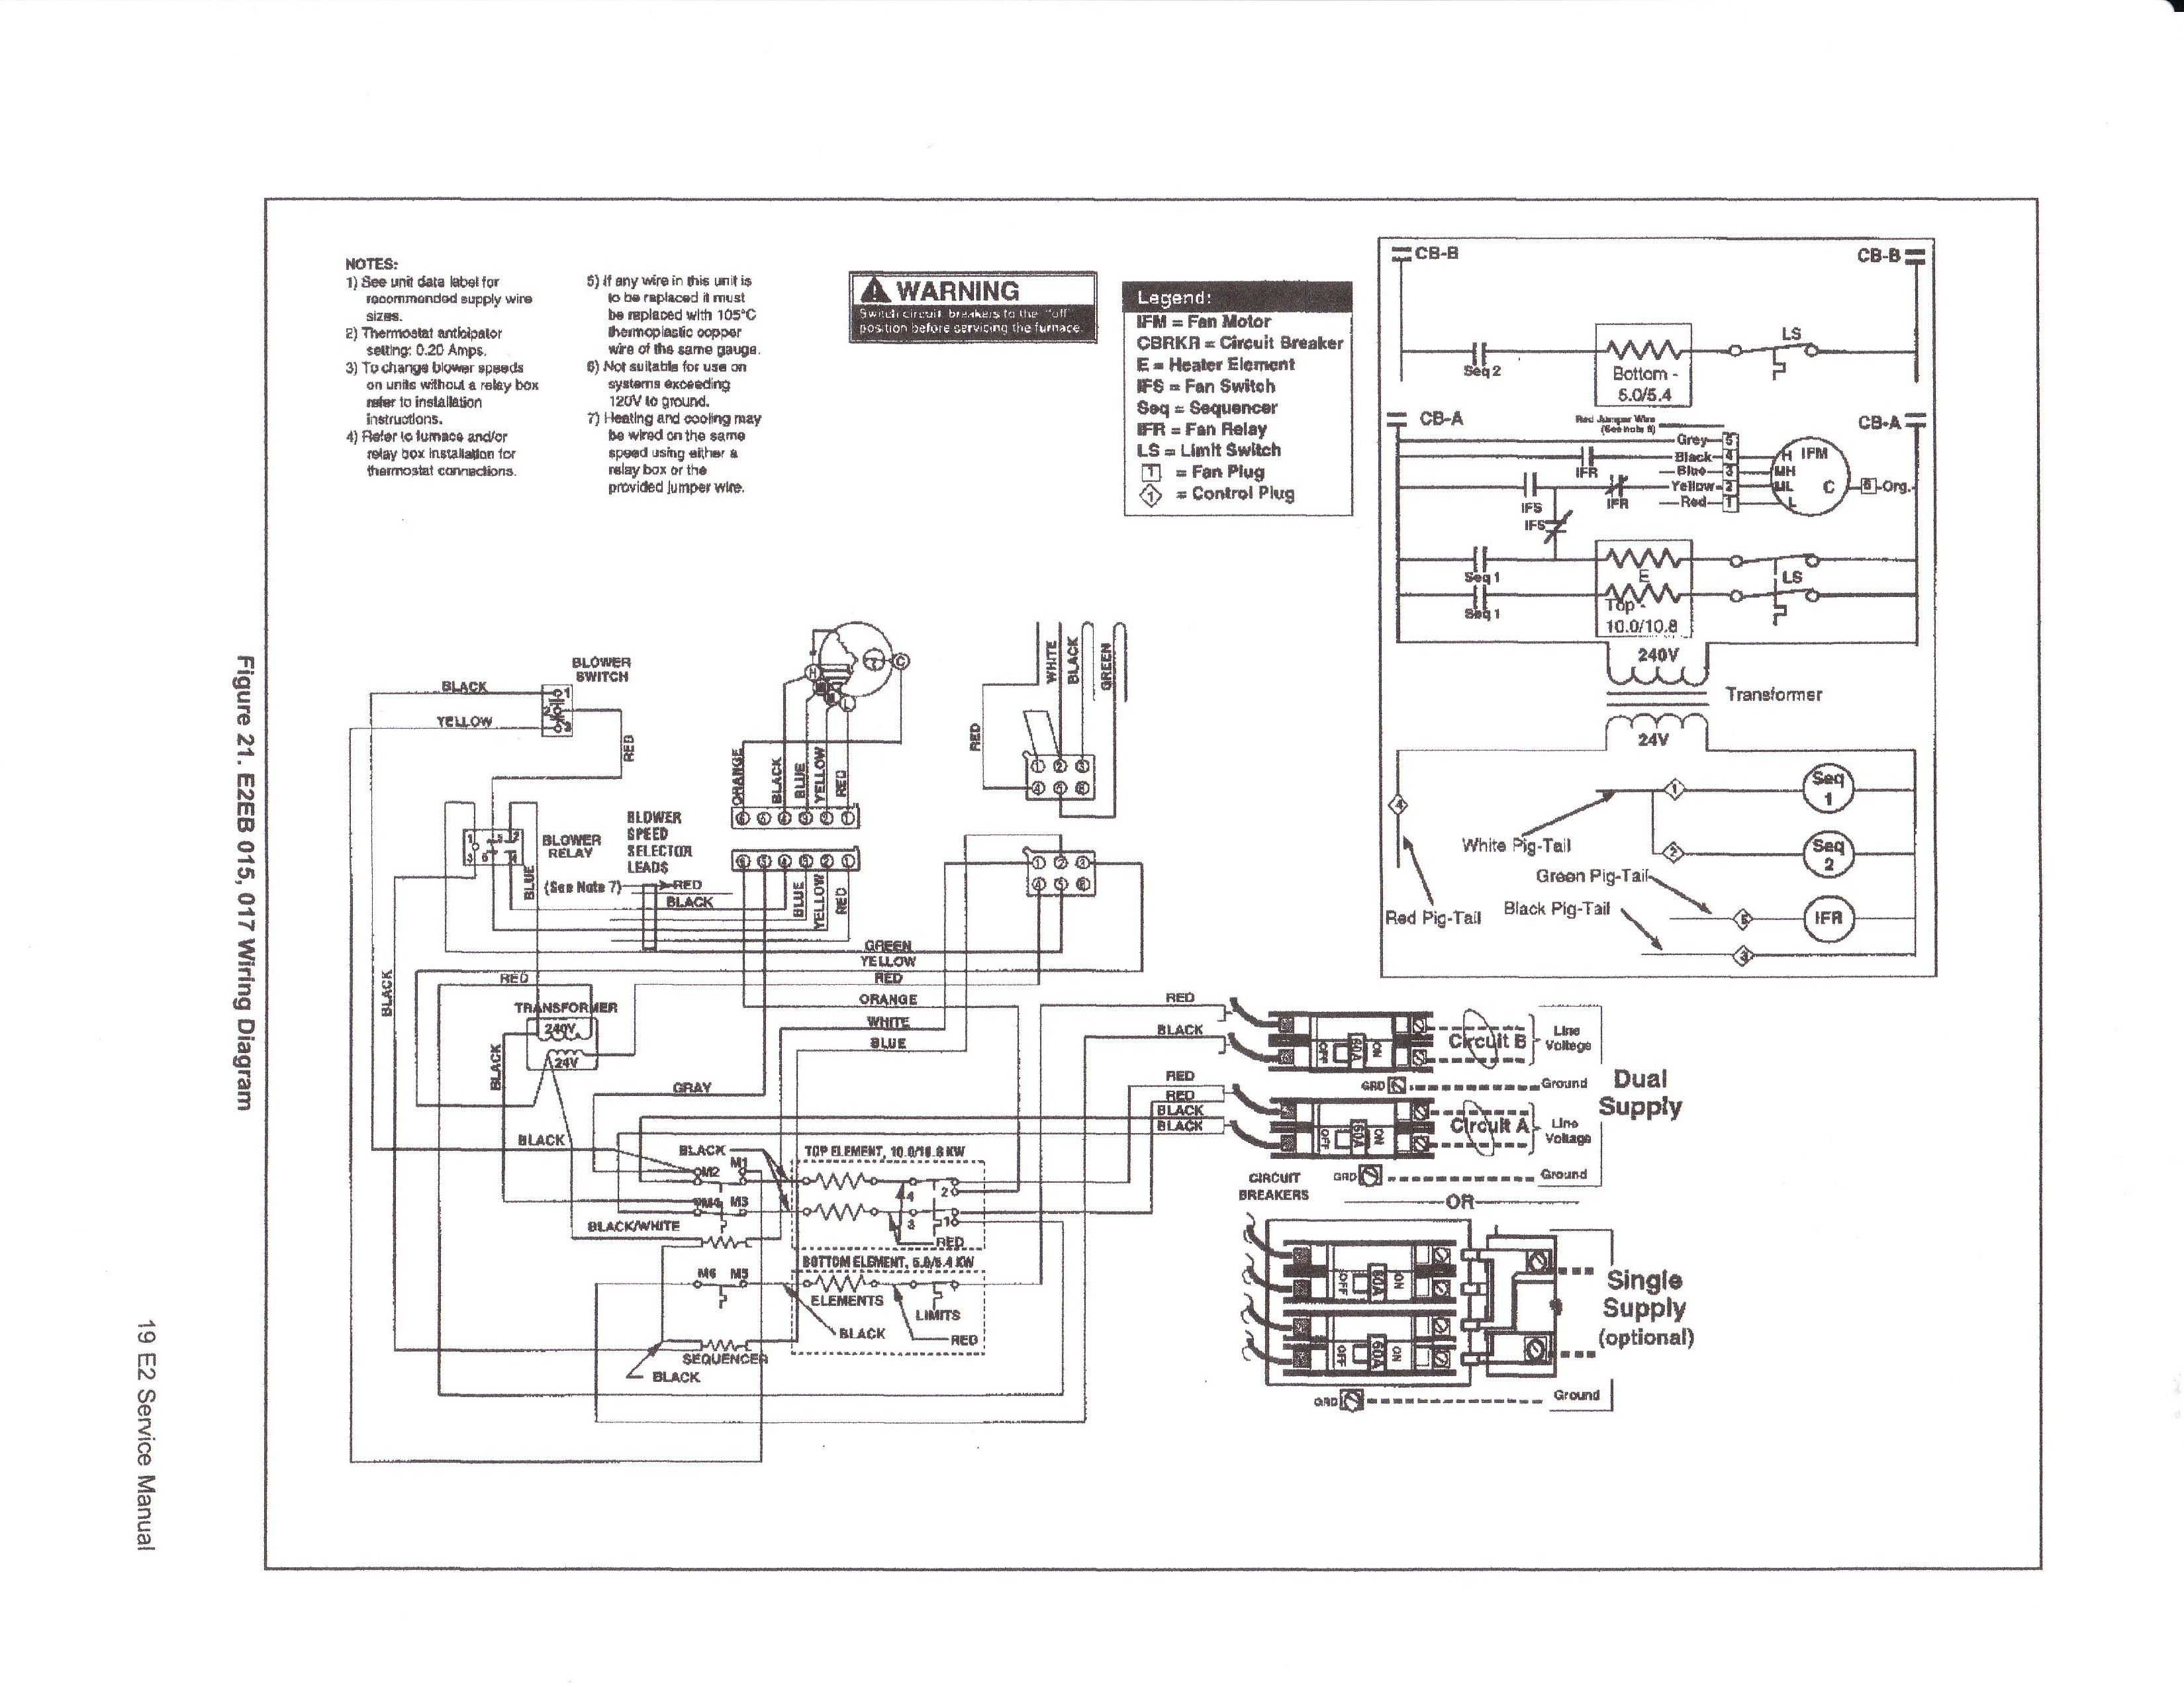 Unique Wiring Diagram For Central Ac Unit Diagramsample